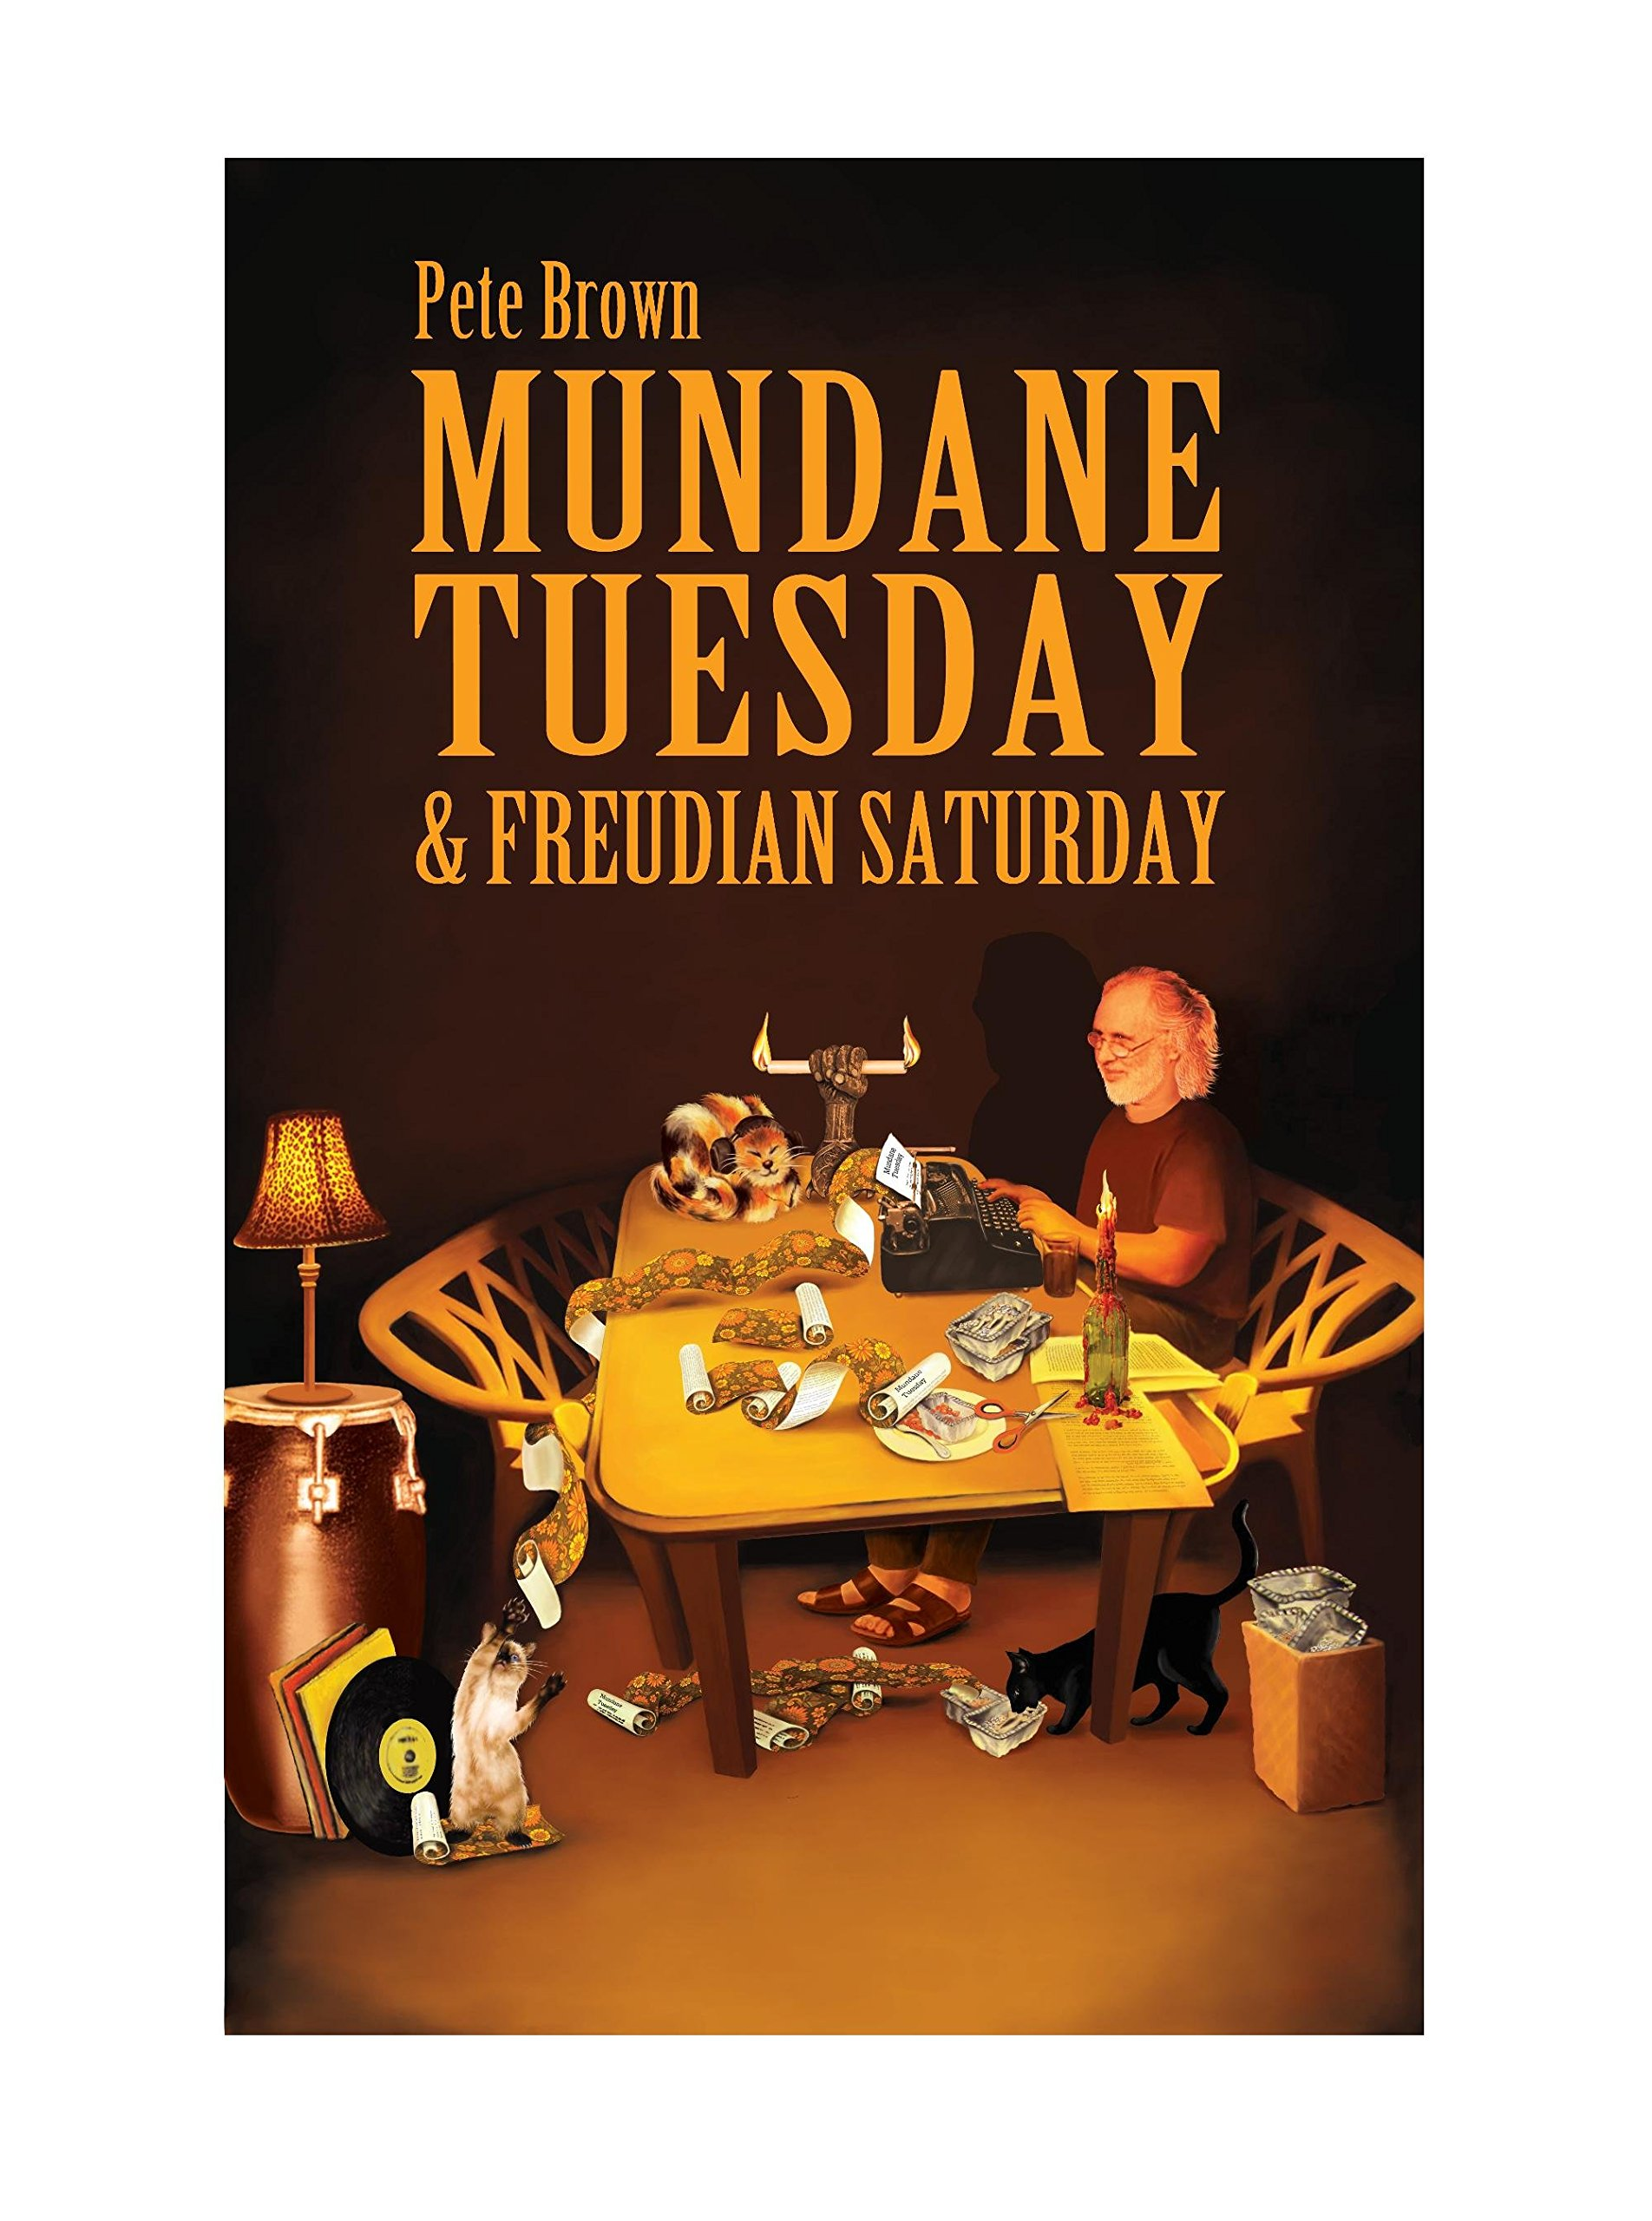 Mundane Tuesday & Freudian Saturday